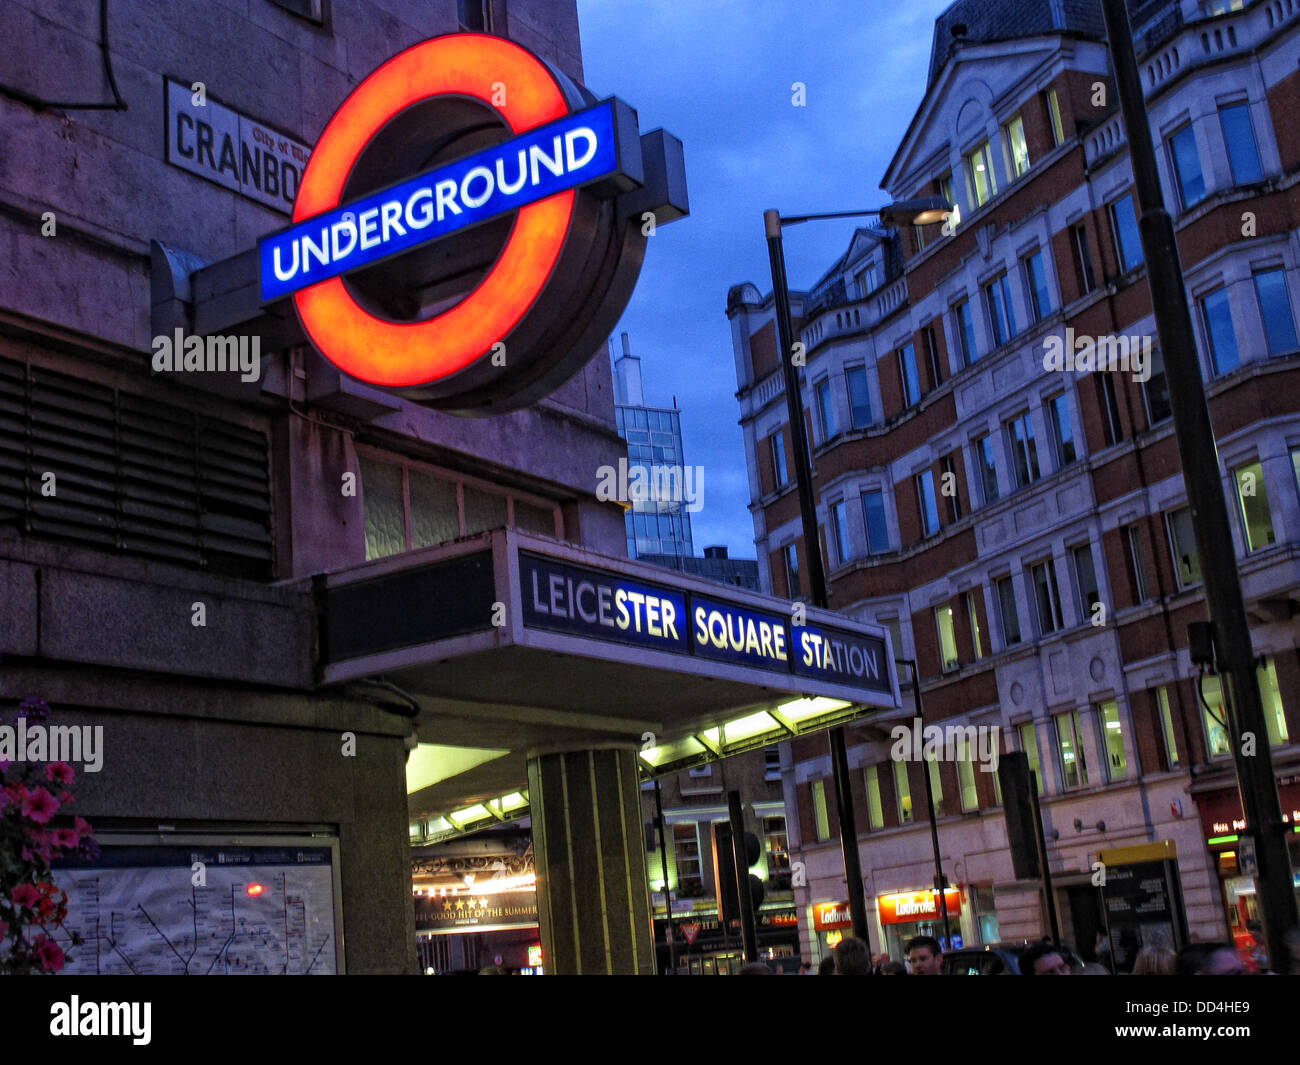 Leicester Square London Underground Station, South East England at dusk - Stock Image